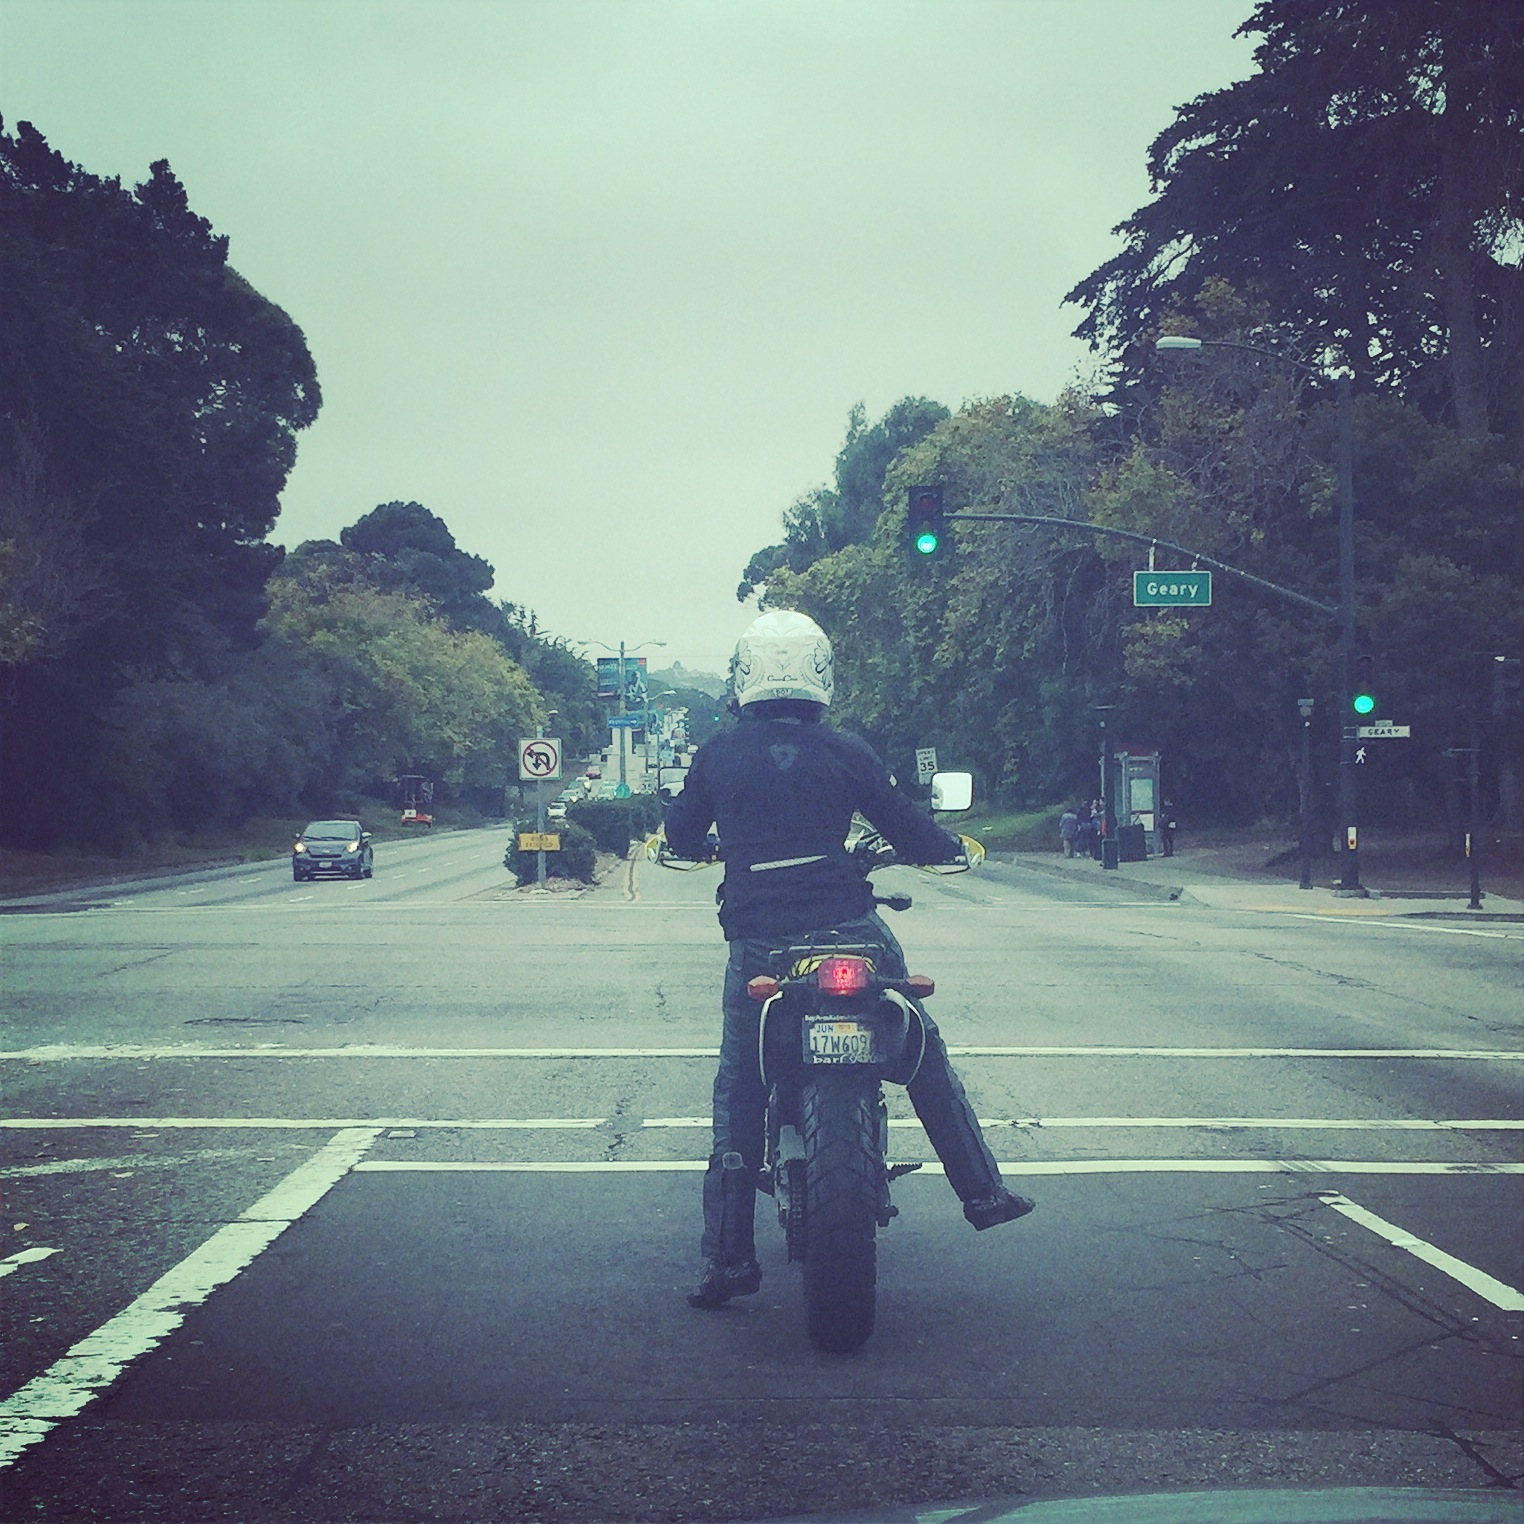 """Me, riding the tallest motorcycle I've ever ridden. A stock DRZ400SM with ~36"""" seat height. Yikes."""